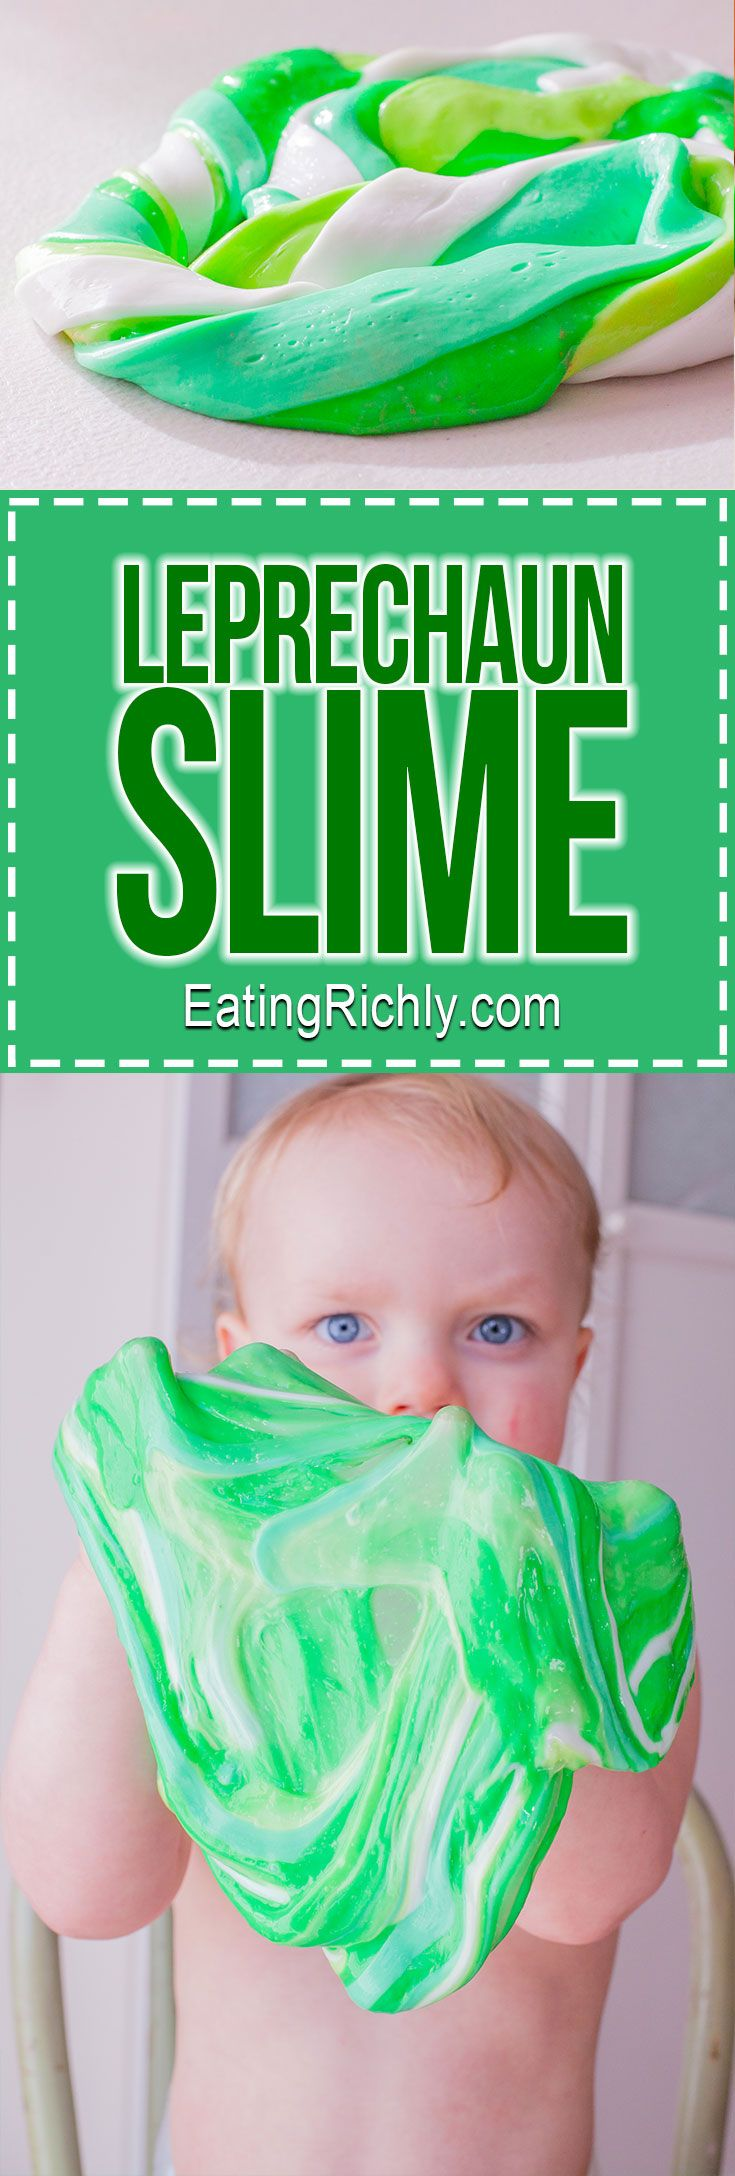 Kids love the sensory experience of this Leprechaun Slime. Great activity for St. Patricks Day! #craft #slime #stpatricksday #sensory #sensoryplay